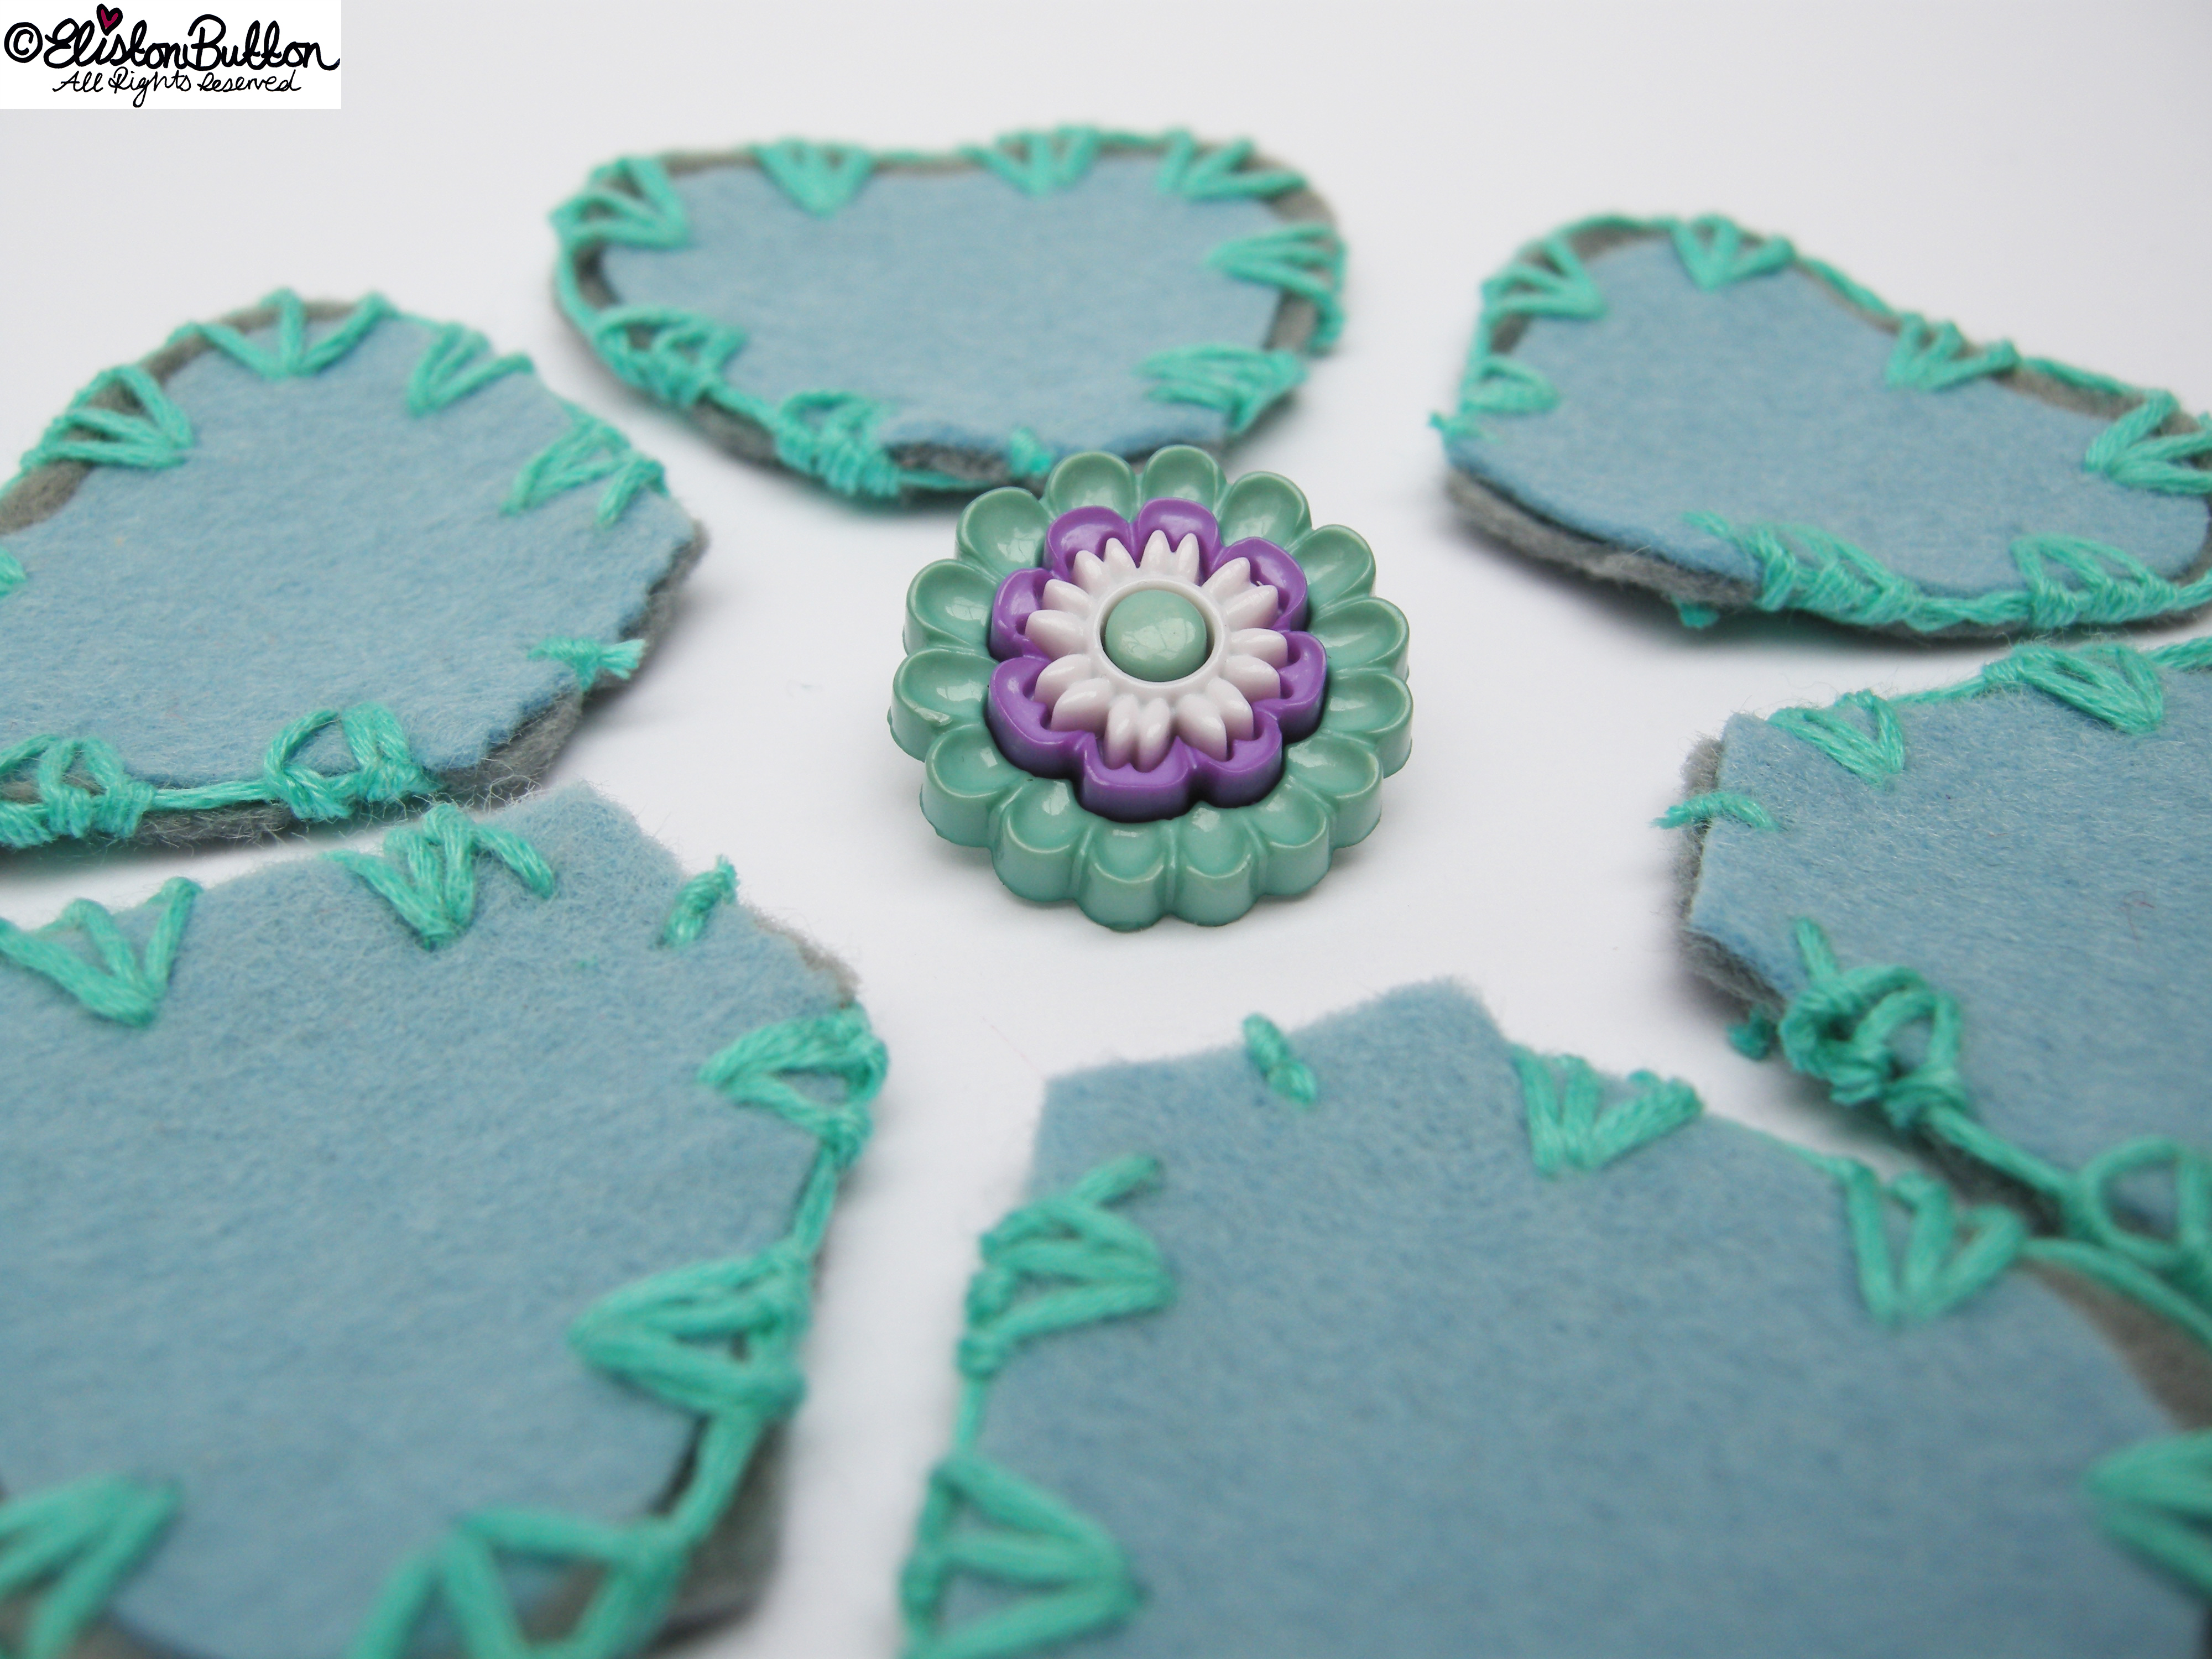 Pastel Blue and Grey Felt Petal Shapes Embroidered with Turquoise Embroidery Thread with Flower Button Centrepiece - 27 Before 27 – Aquamarine at www.elistonbutton.com - Eliston Button - That Crafty Kid – Art, Design, Craft & Adventure.